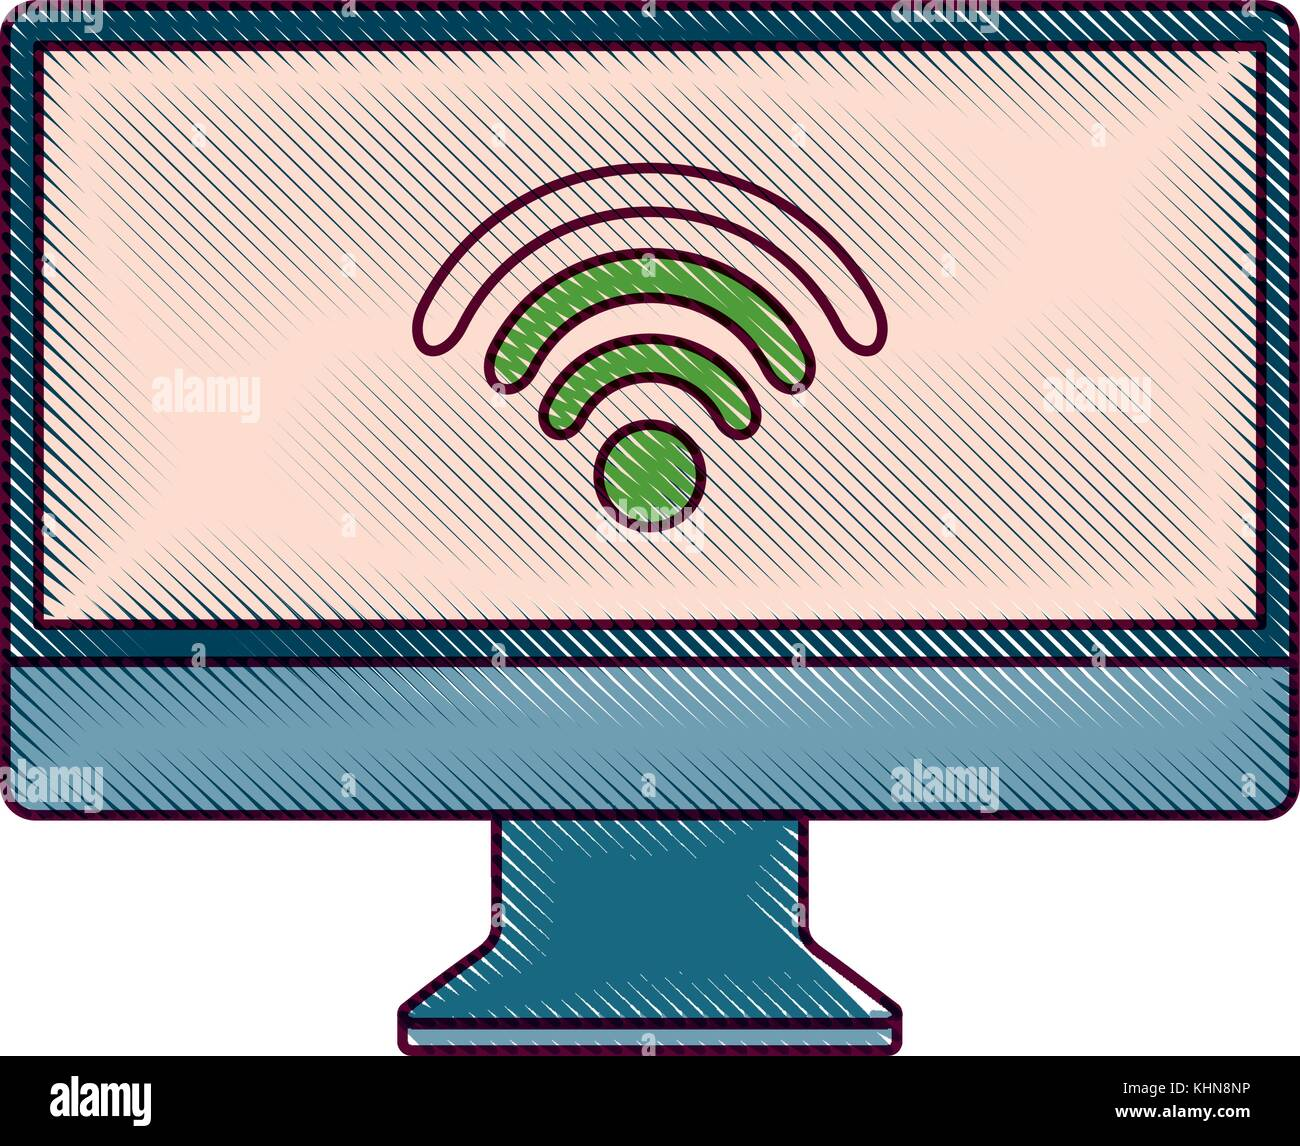 monitor computer wifi connection screen device - Stock Image